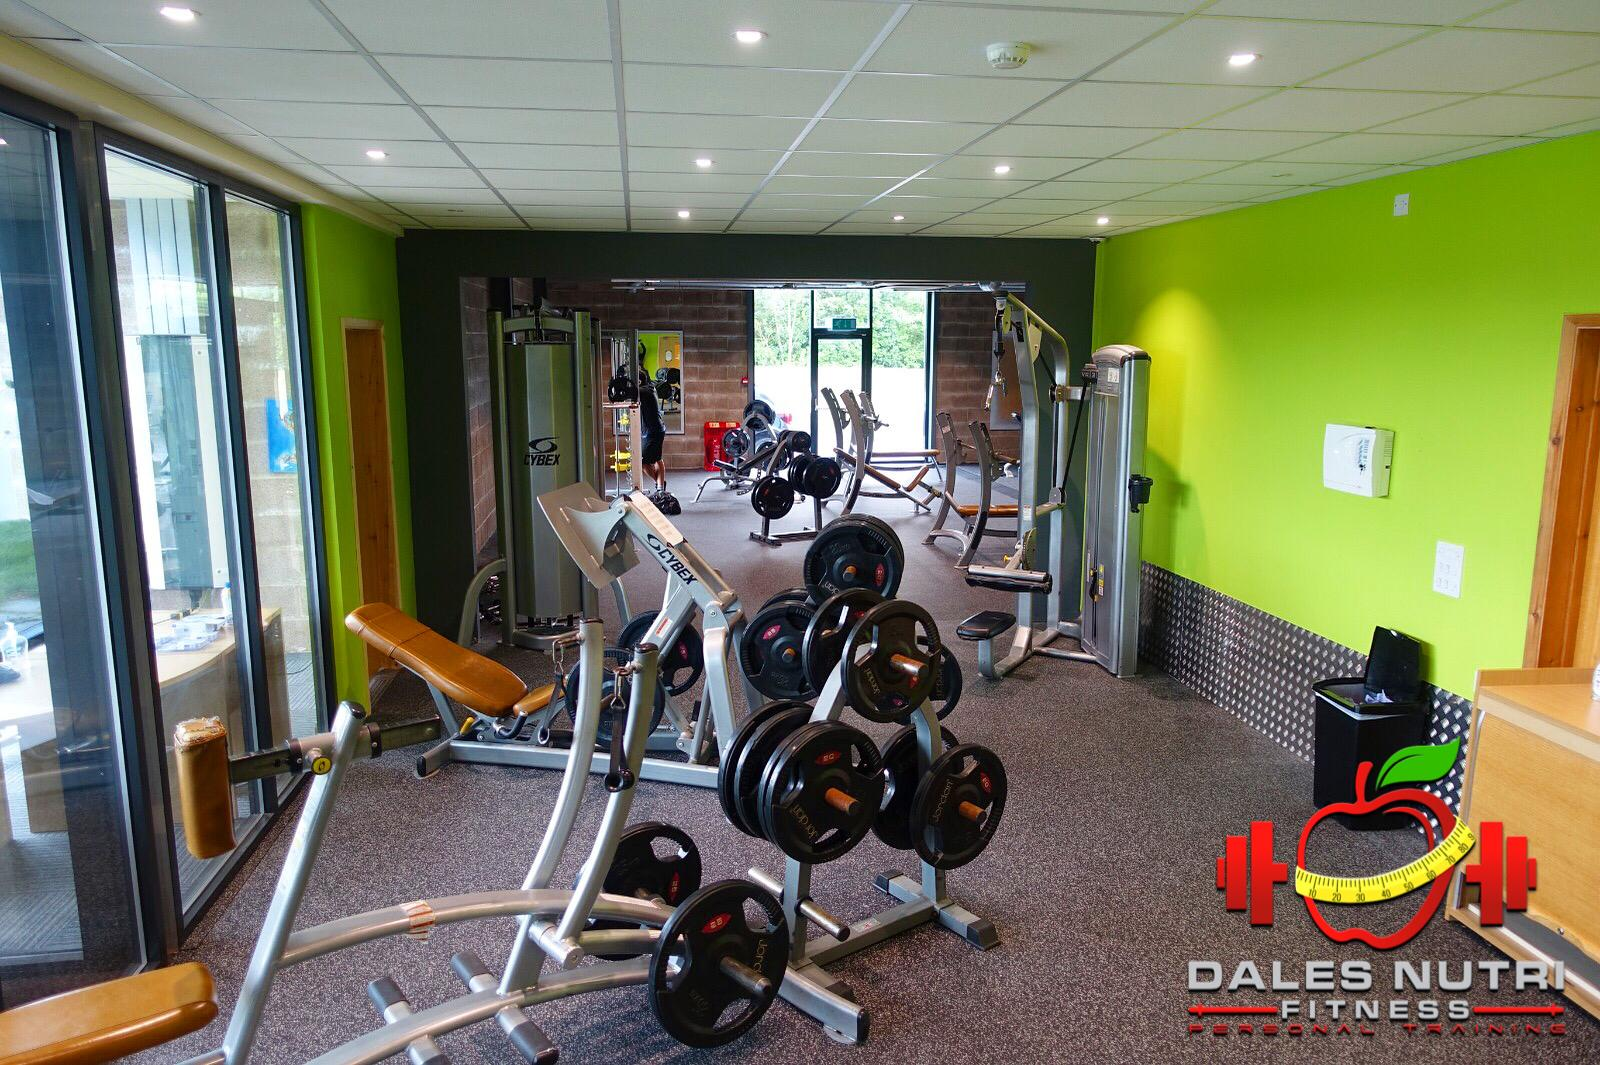 Downstairs (Free Weights Area)